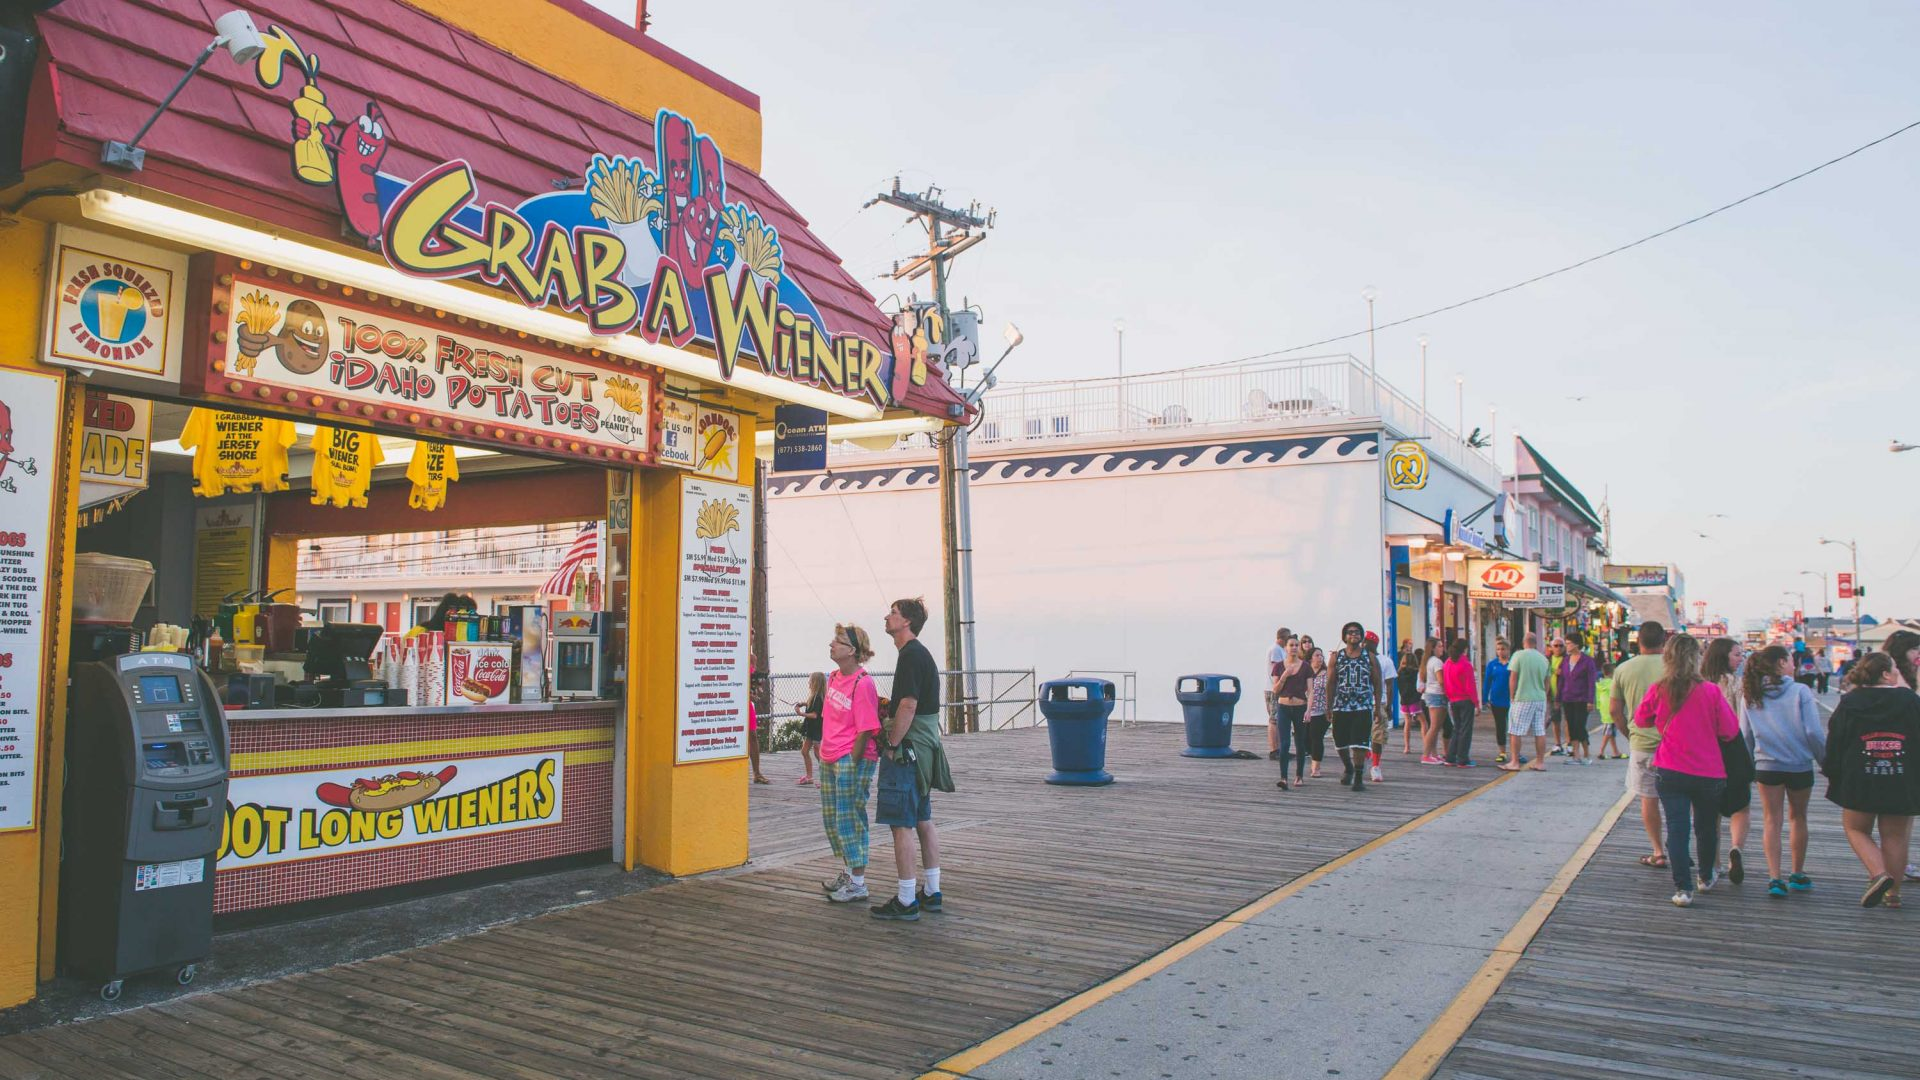 'Grab a wiener', one of many boardwalk cafes, where you can also buy T-shirts with slogans such as 'Big wiener, small bun'.